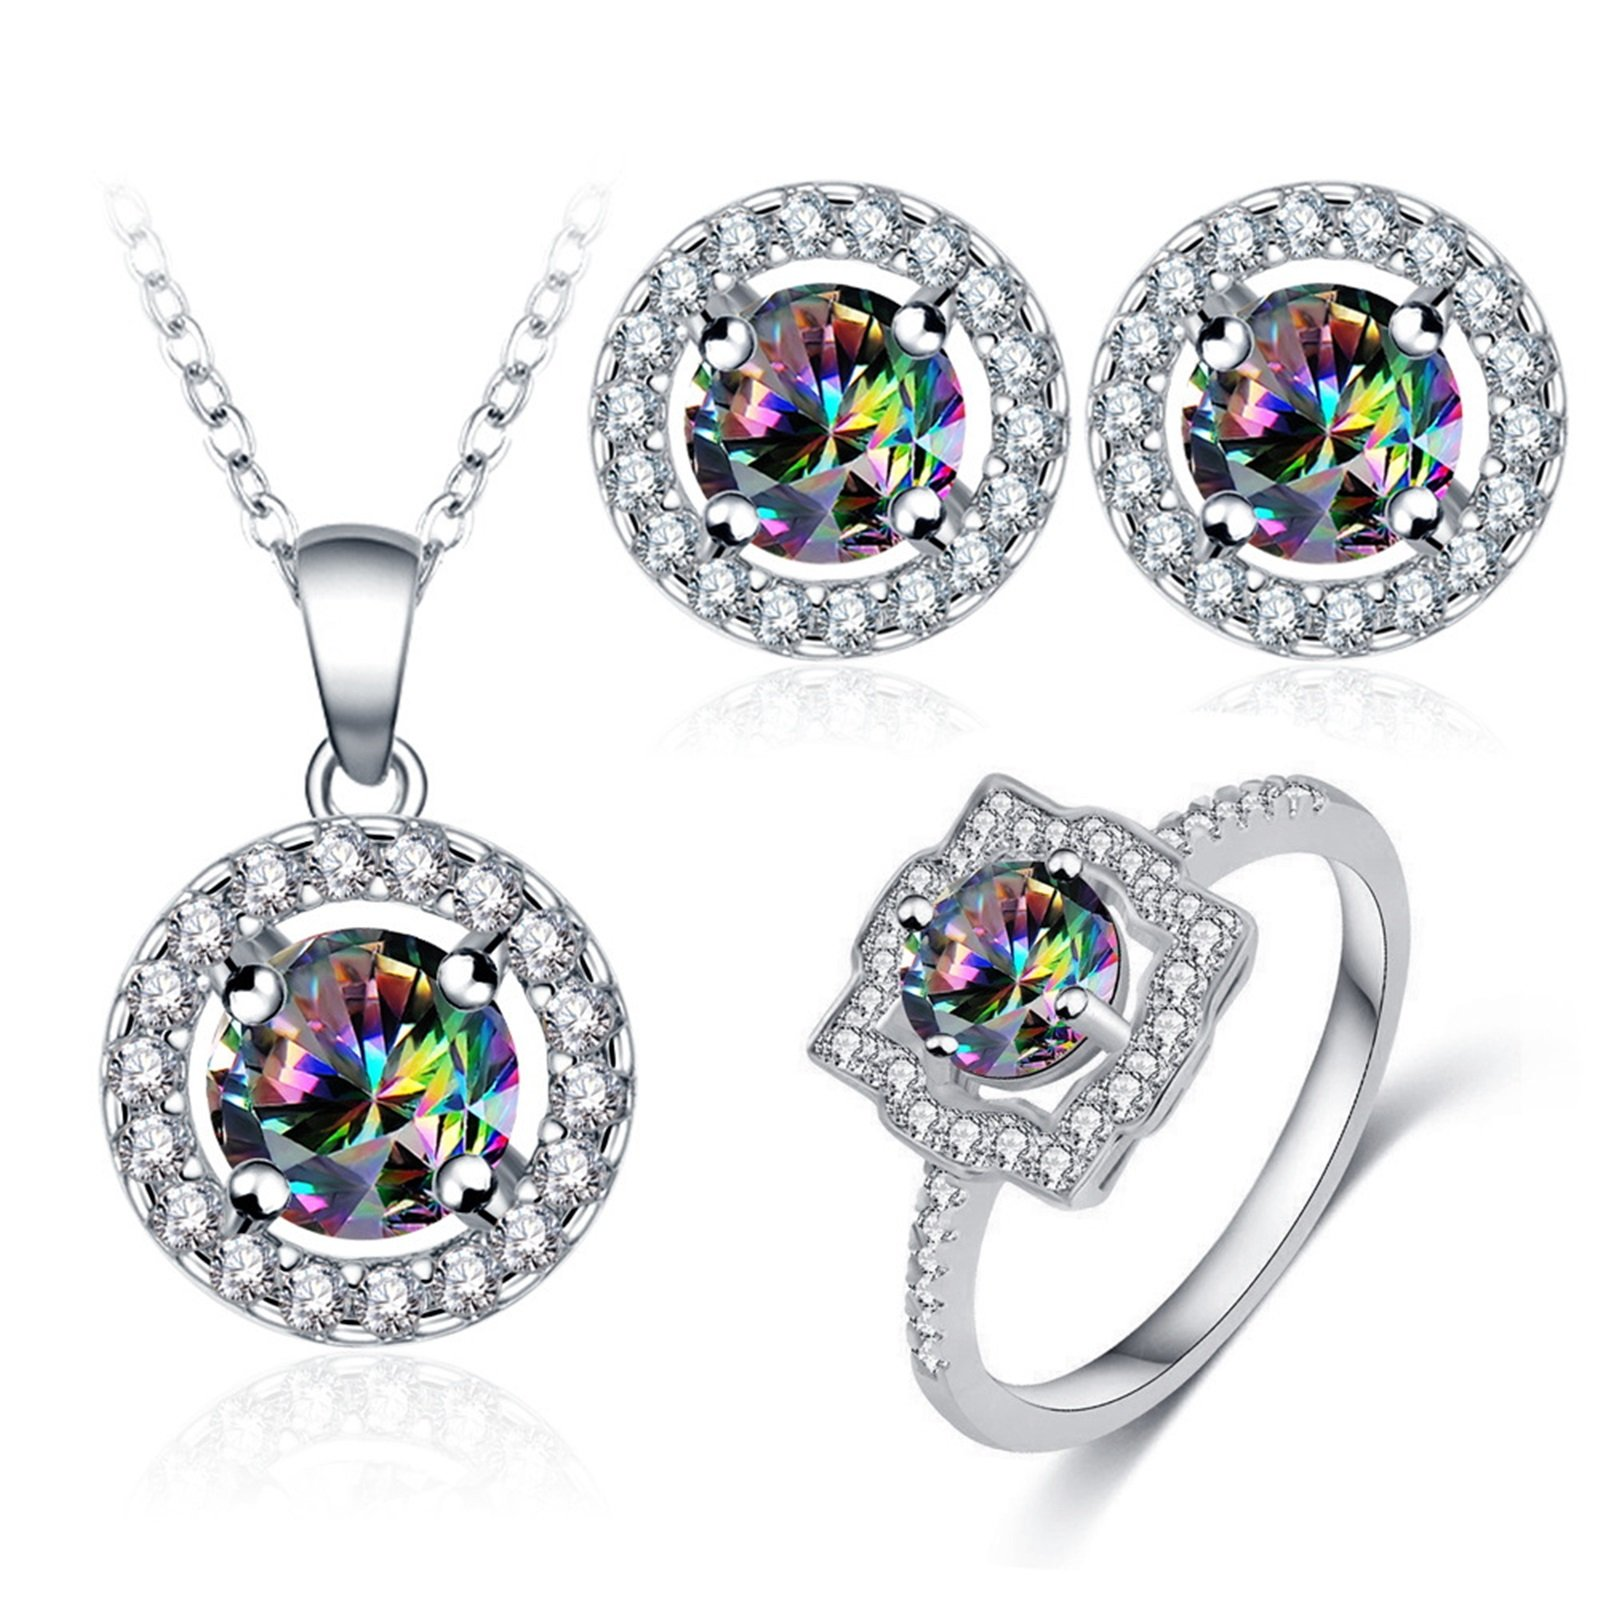 Daesar Necklace Earrings Ring Jewelry Set for Women Colorful Cubic Zirconia for Anniversary Bridal Size 9